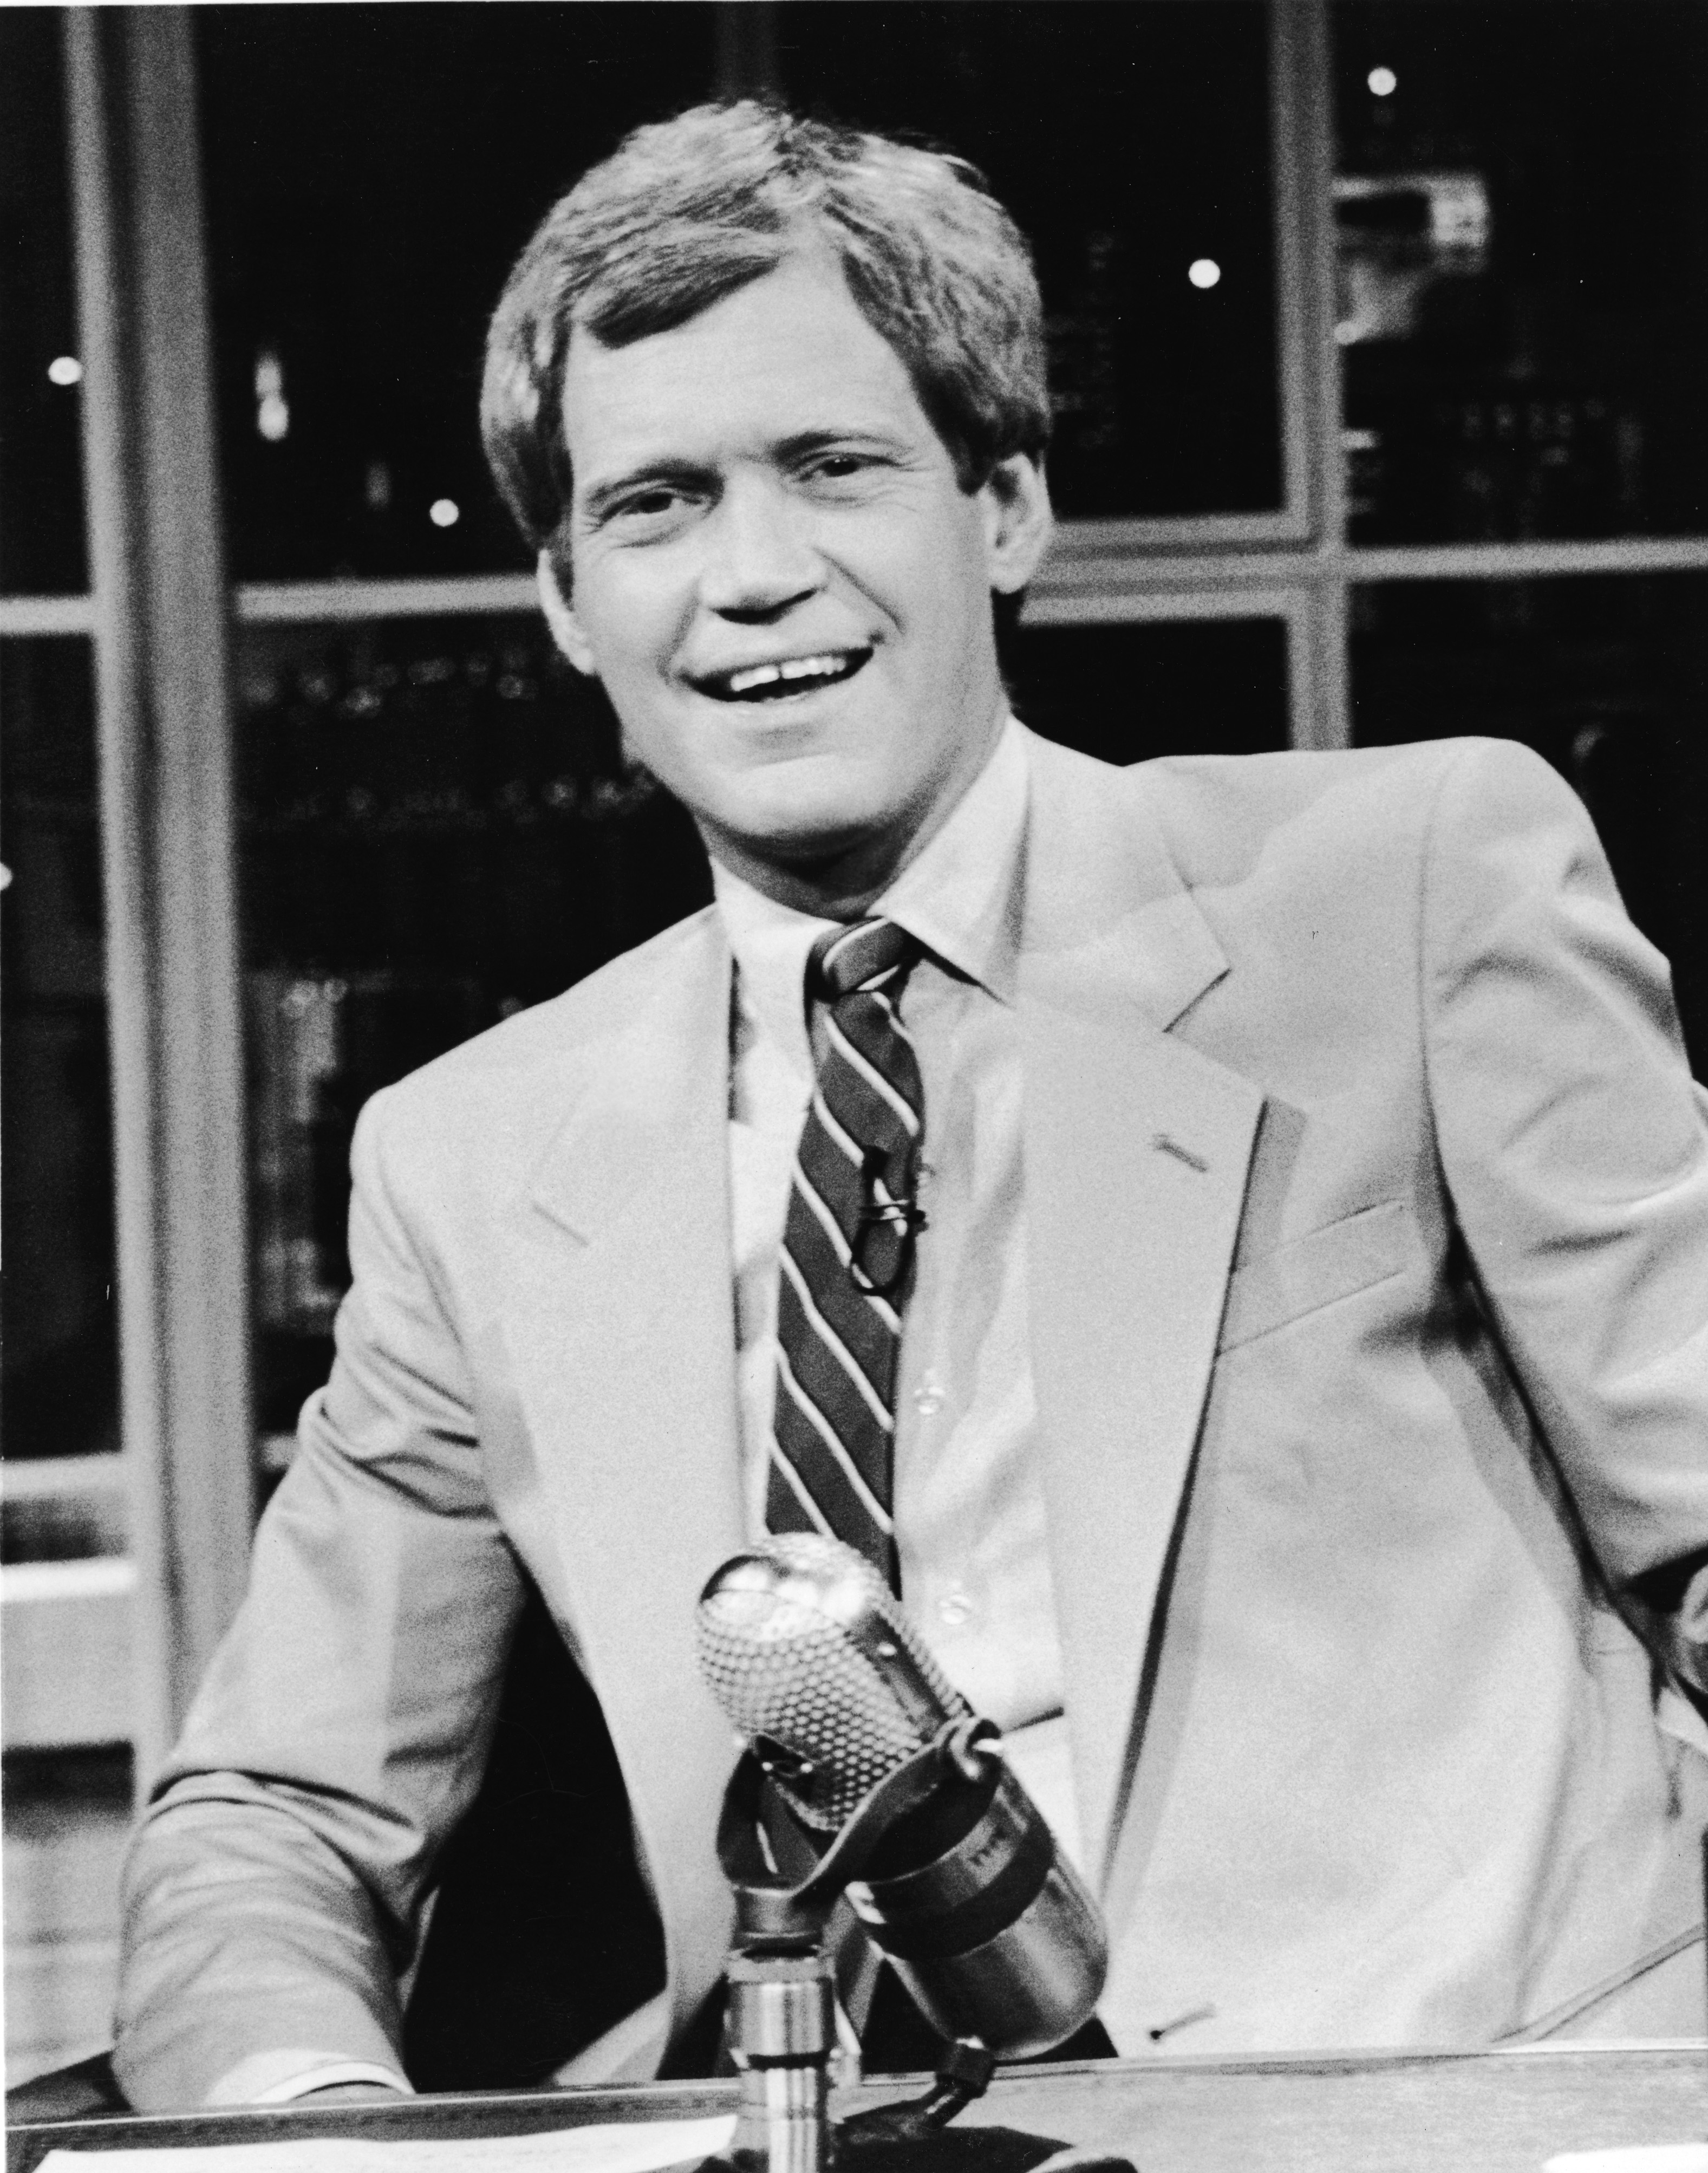 David Letterman sits at his desk on 'Late Night with David Letterman,' in New York, 1986.